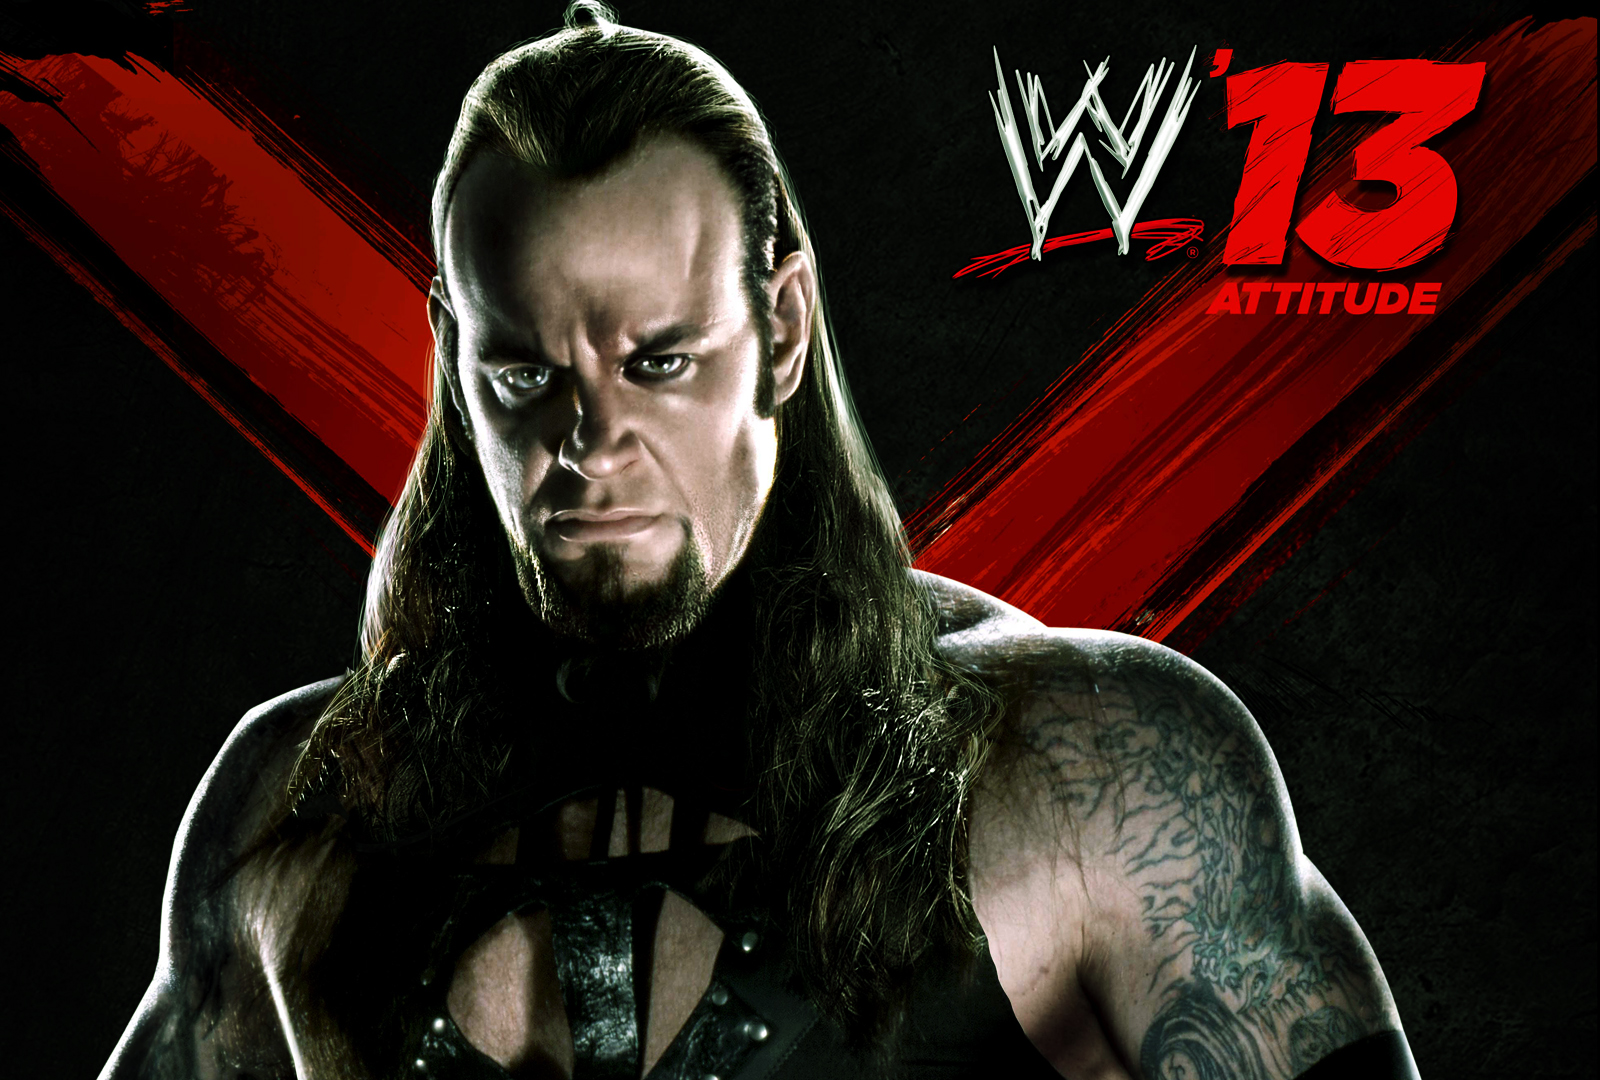 http://2.bp.blogspot.com/-crU4oIZs7YM/UI77AkVApSI/AAAAAAAAFtY/lM78lAlkDLk/s1600/WWE-13-Game-Undertaker-HD-Wallpaper_GameWallBase.Com.jpg